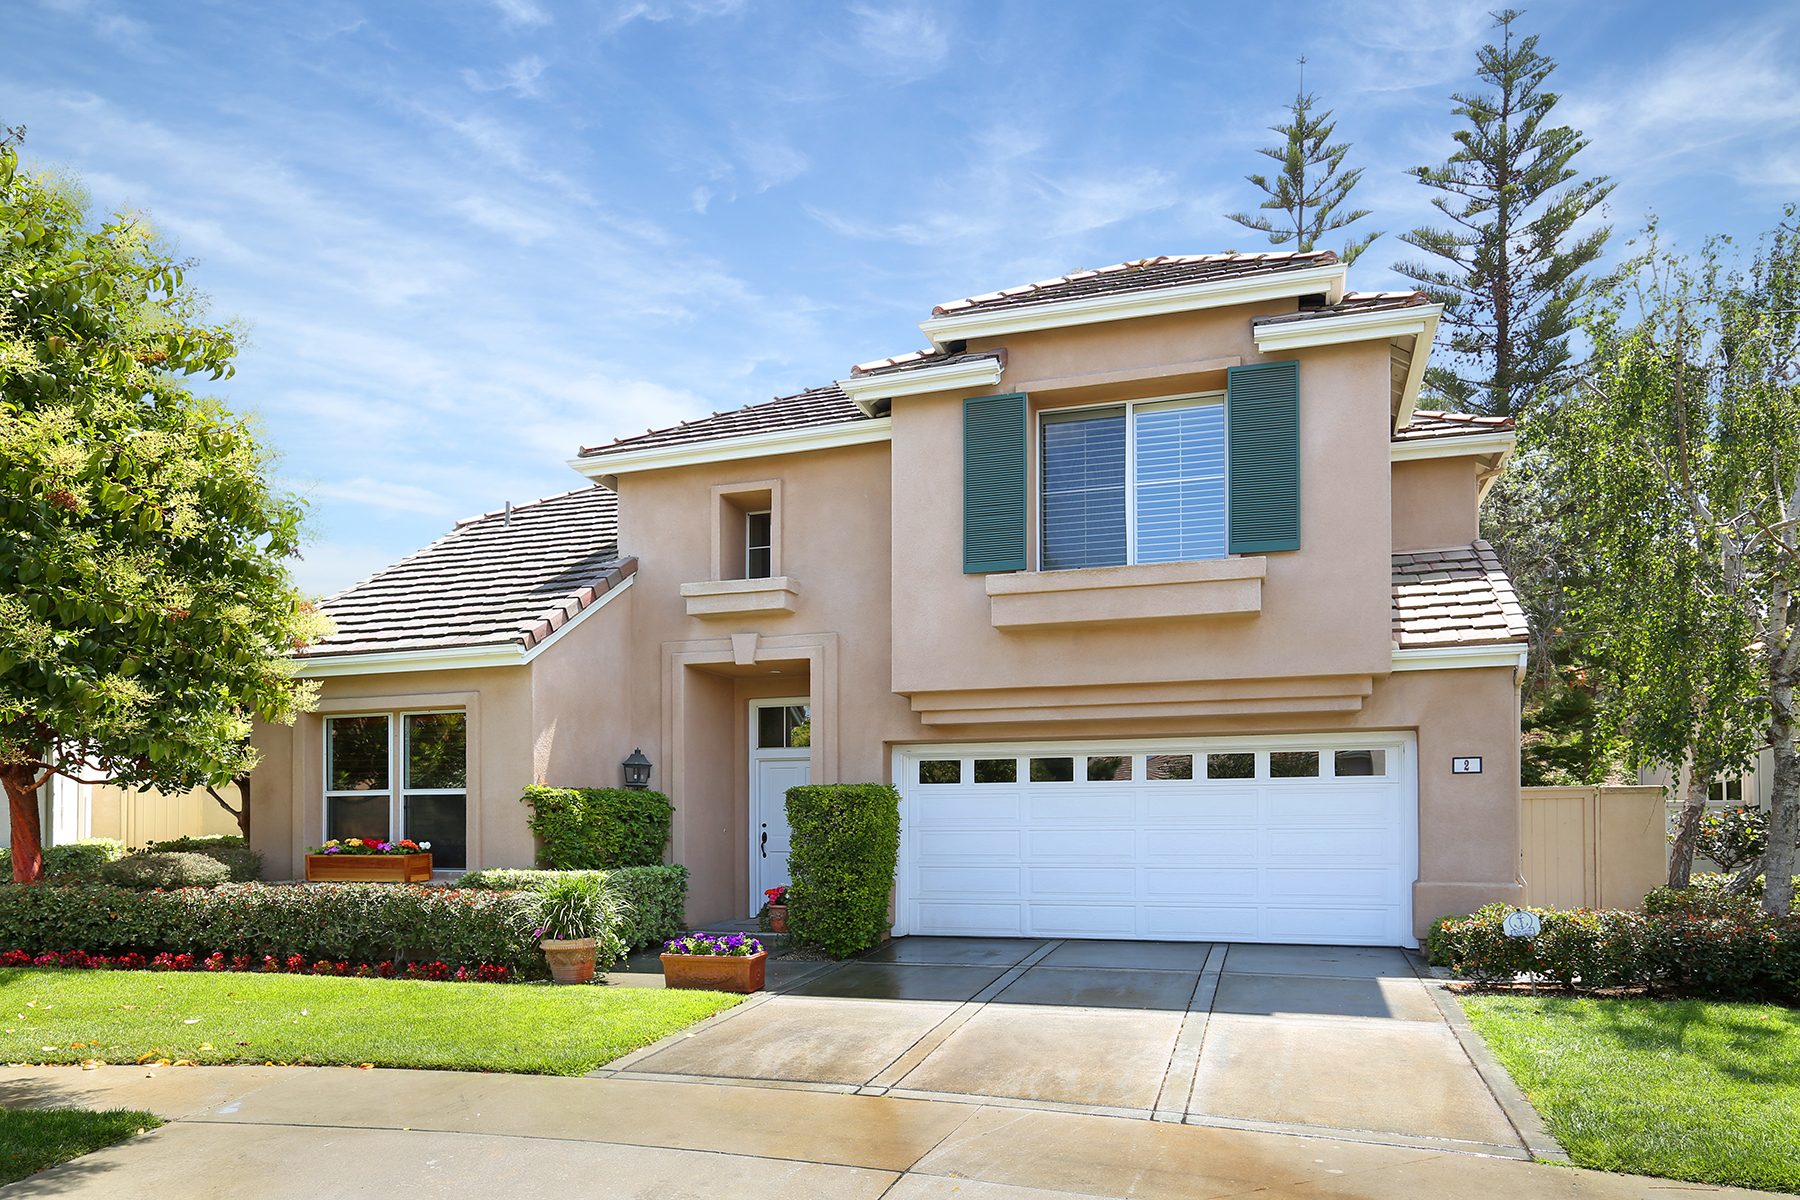 Single Family Home for Sale at 2 Montreaux Newport Coast, California 92657 United States